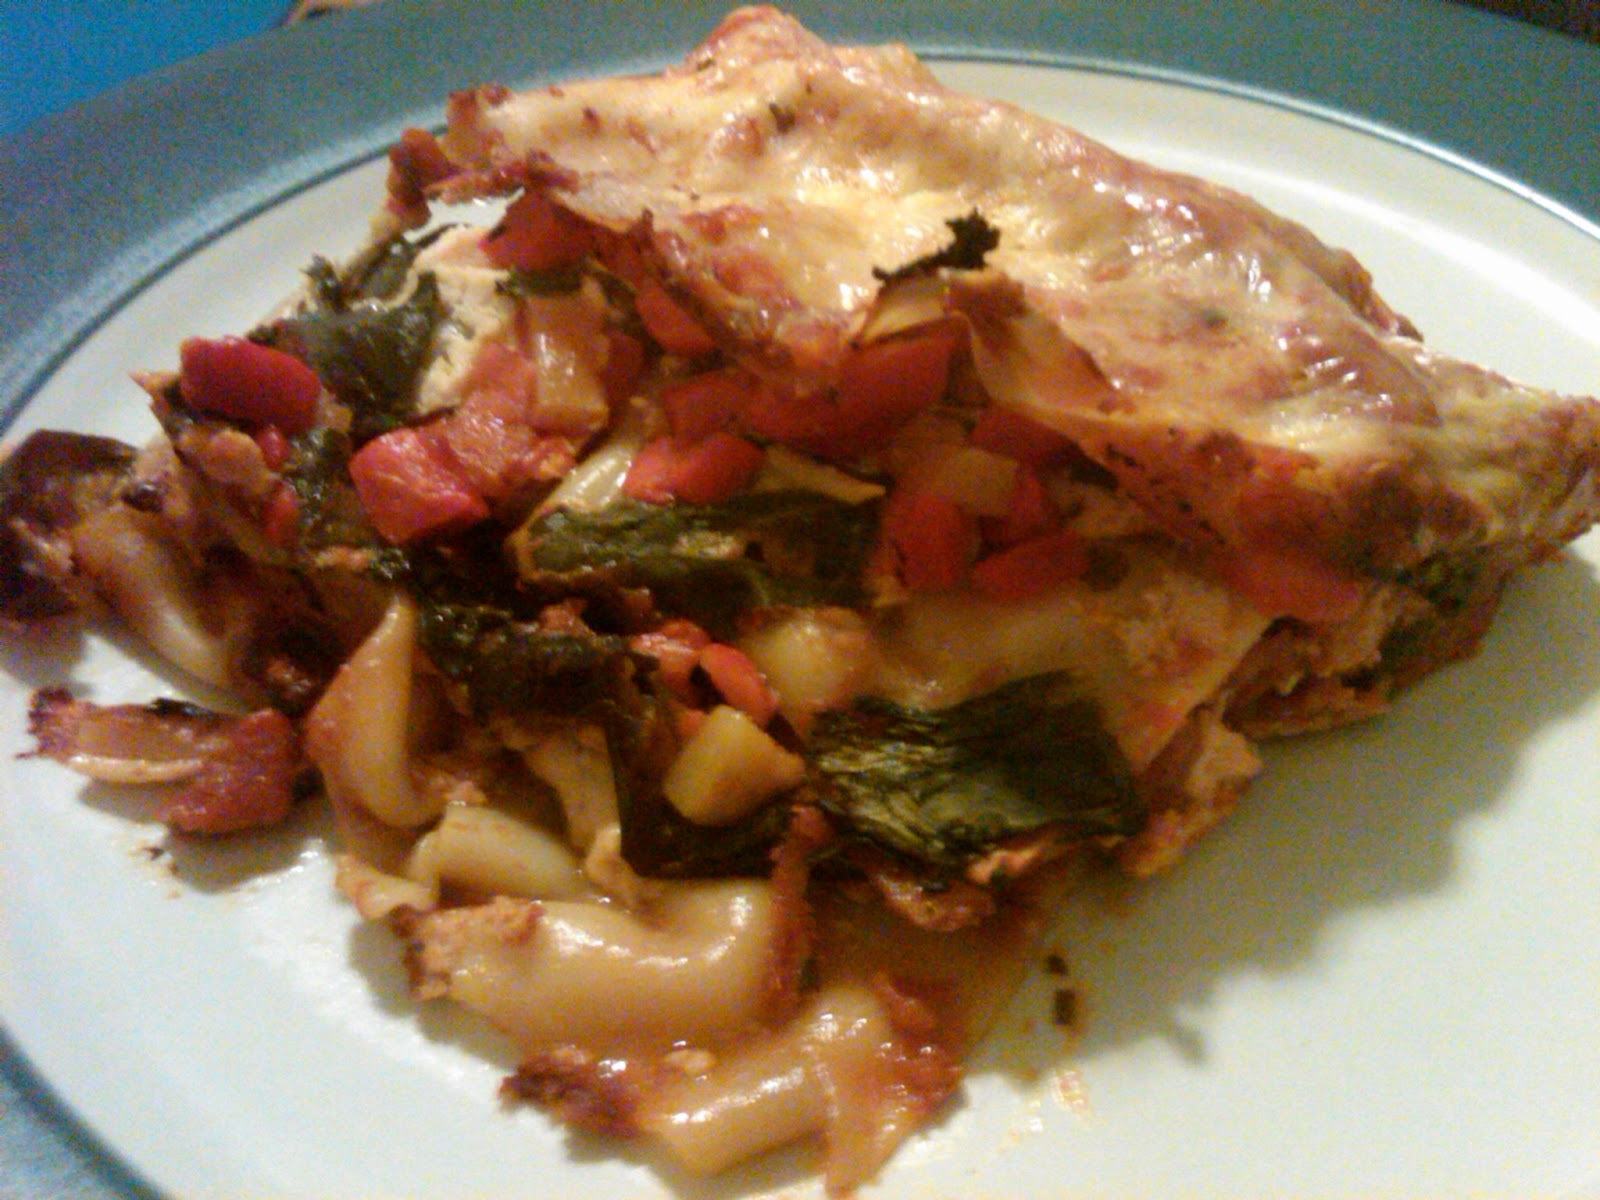 ... Lasagna (with Eggplant, Caramelized Onions, Spinach, and Roasted Red